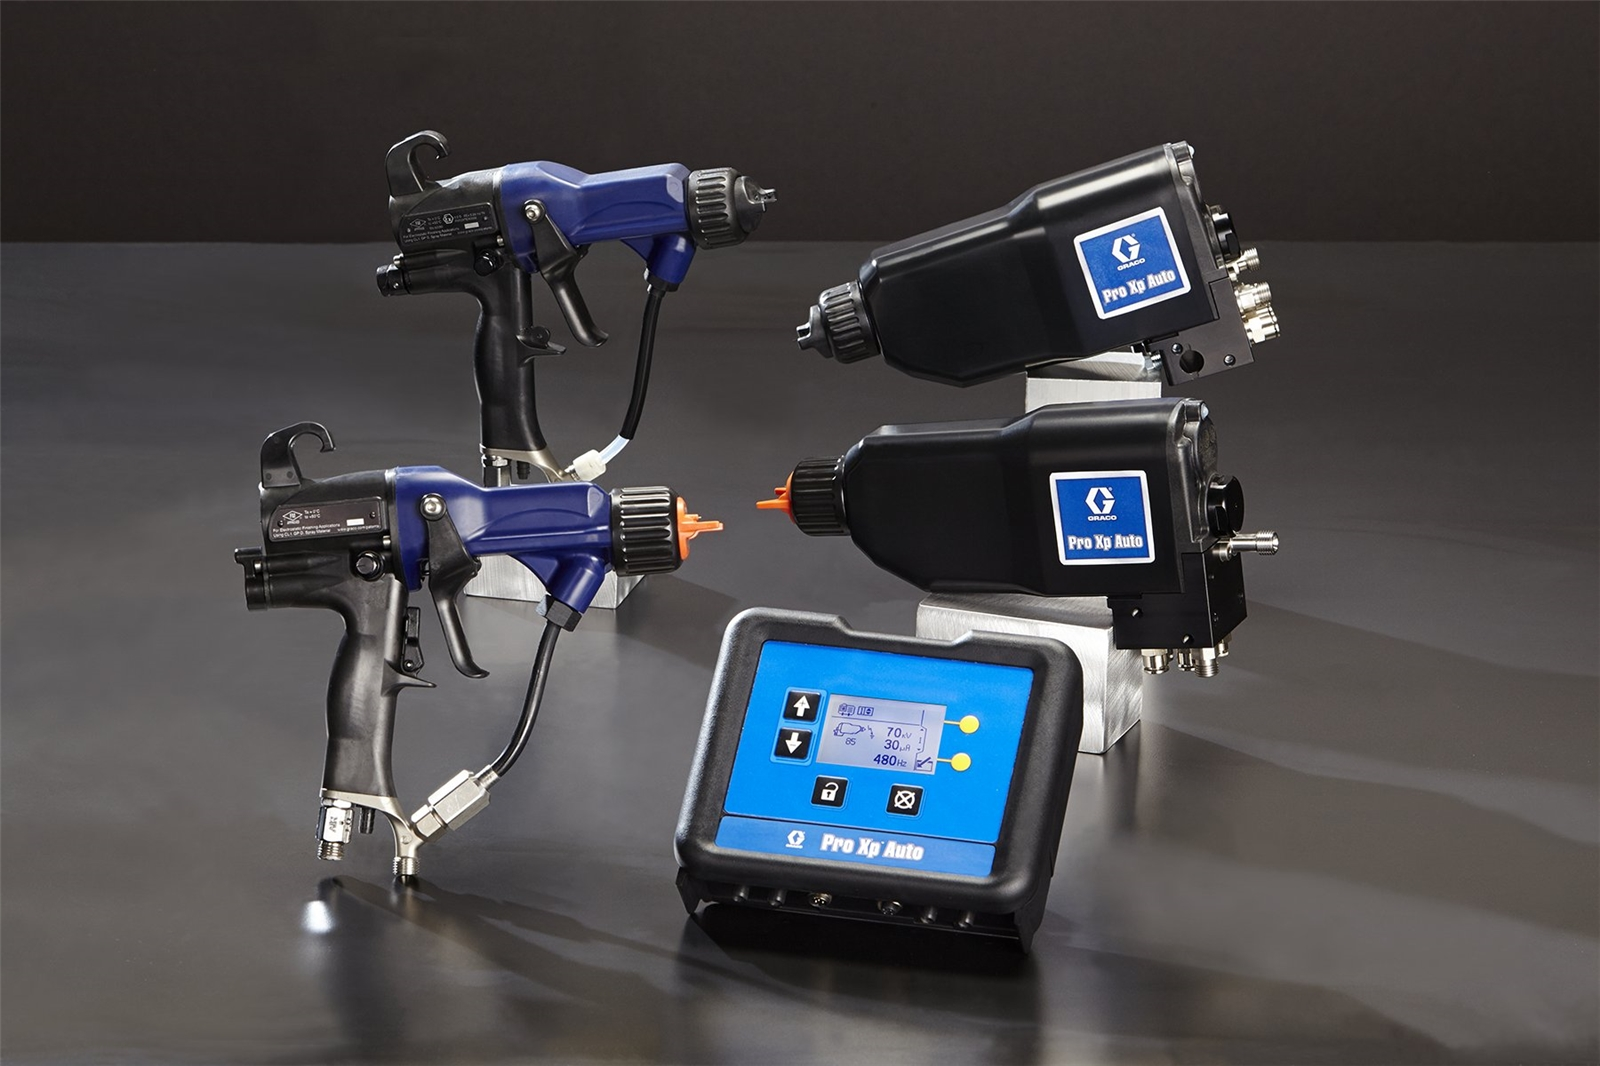 Pro Xp electrostatic spray guns come in manual or automatic models.